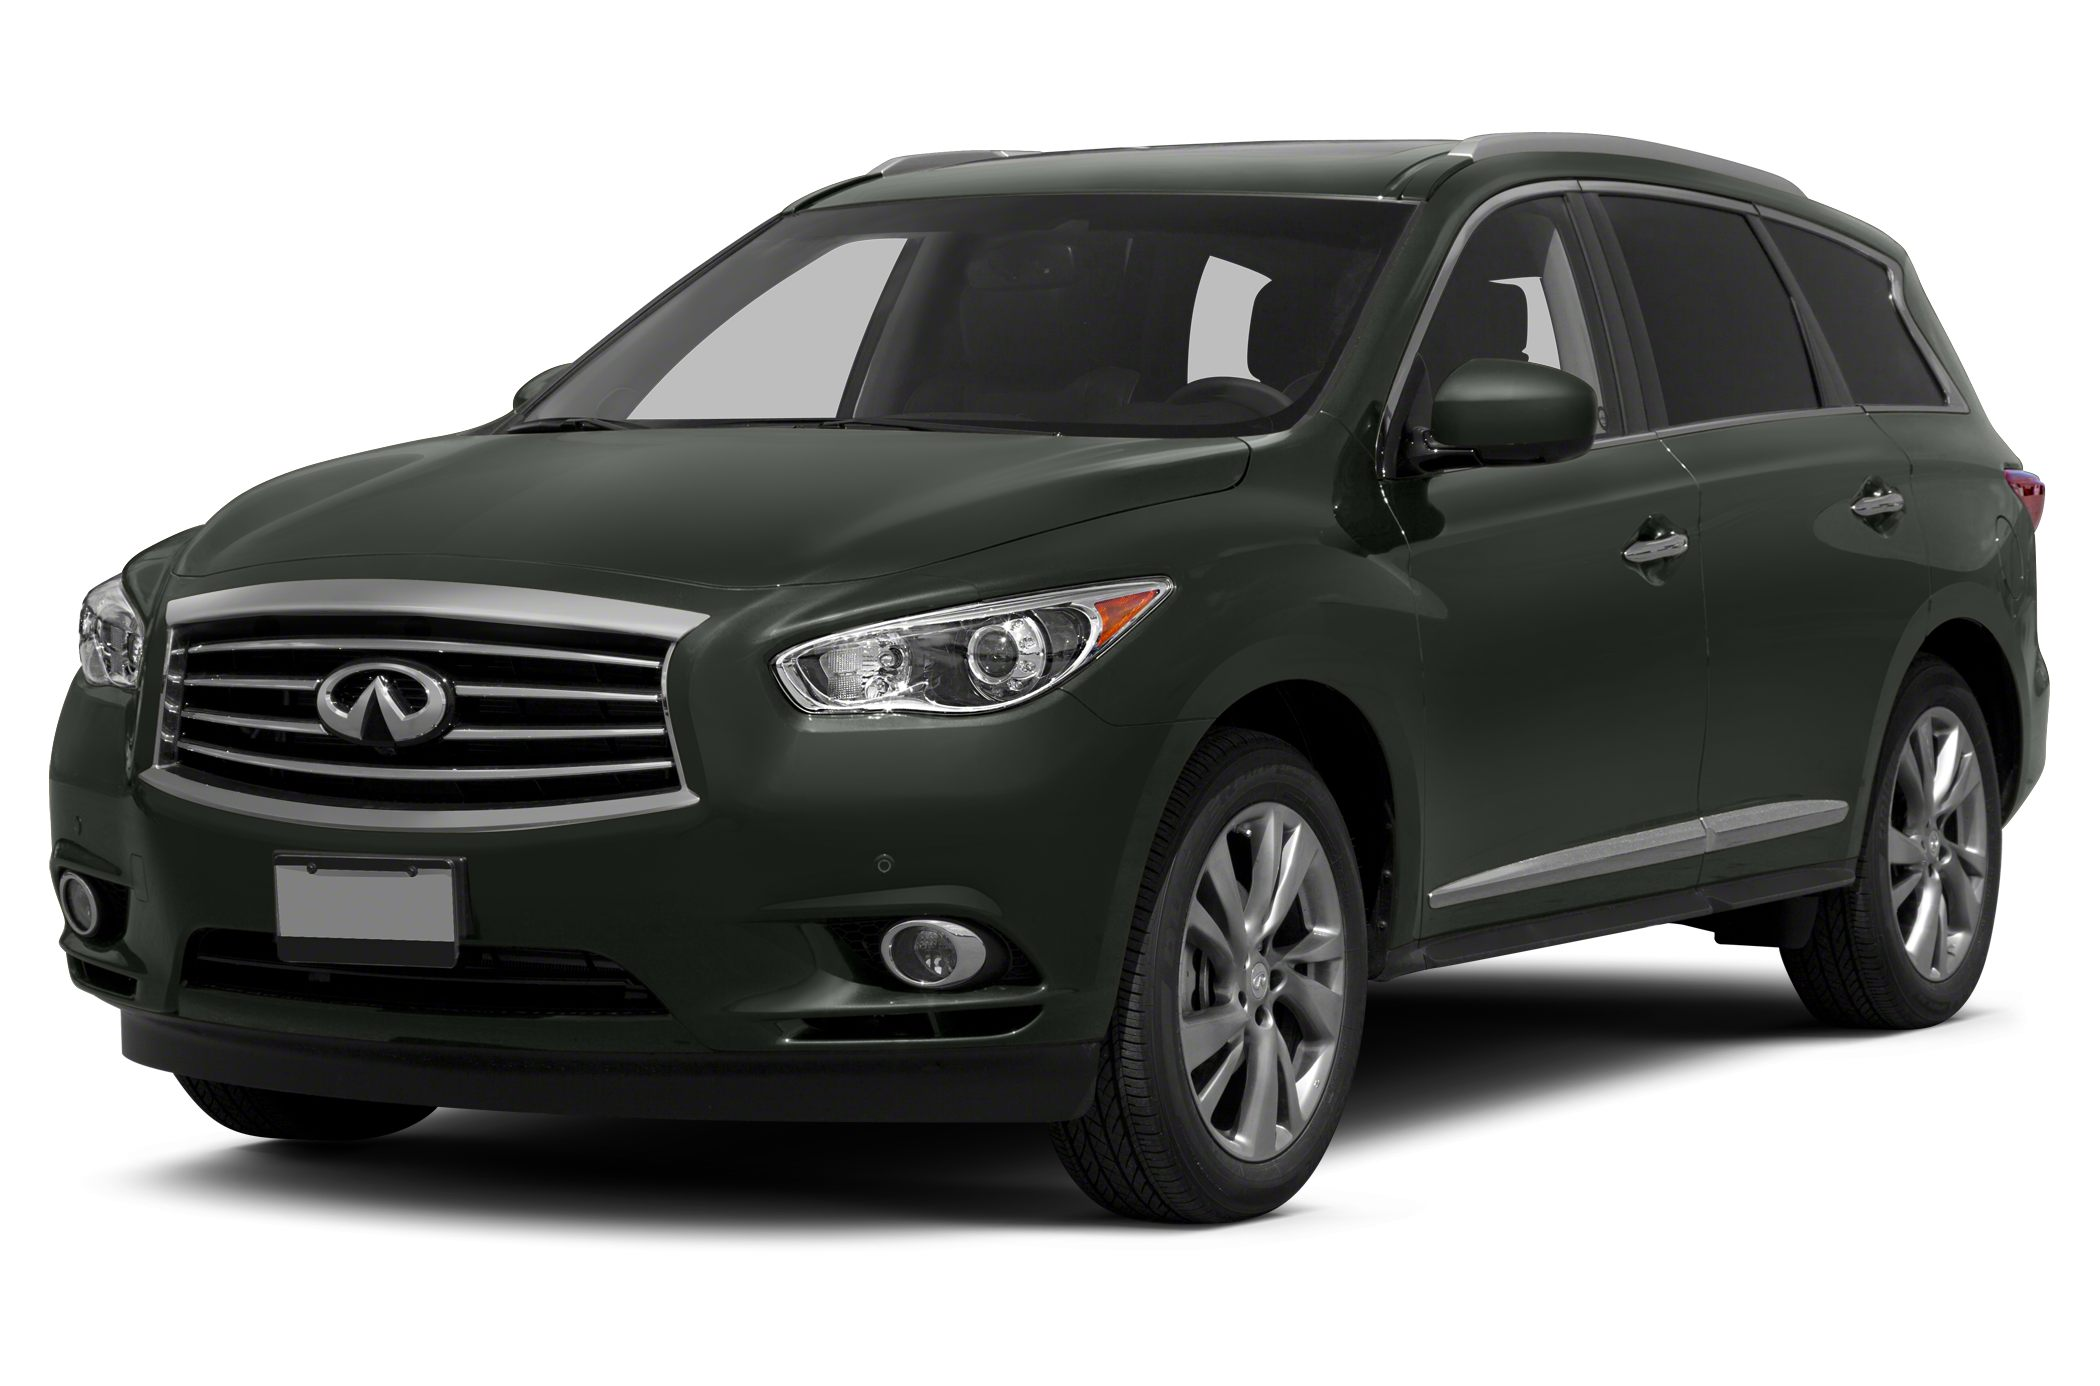 2013 Infiniti JX35 Base SUV for sale in Raleigh for $36,914 with 28,679 miles.